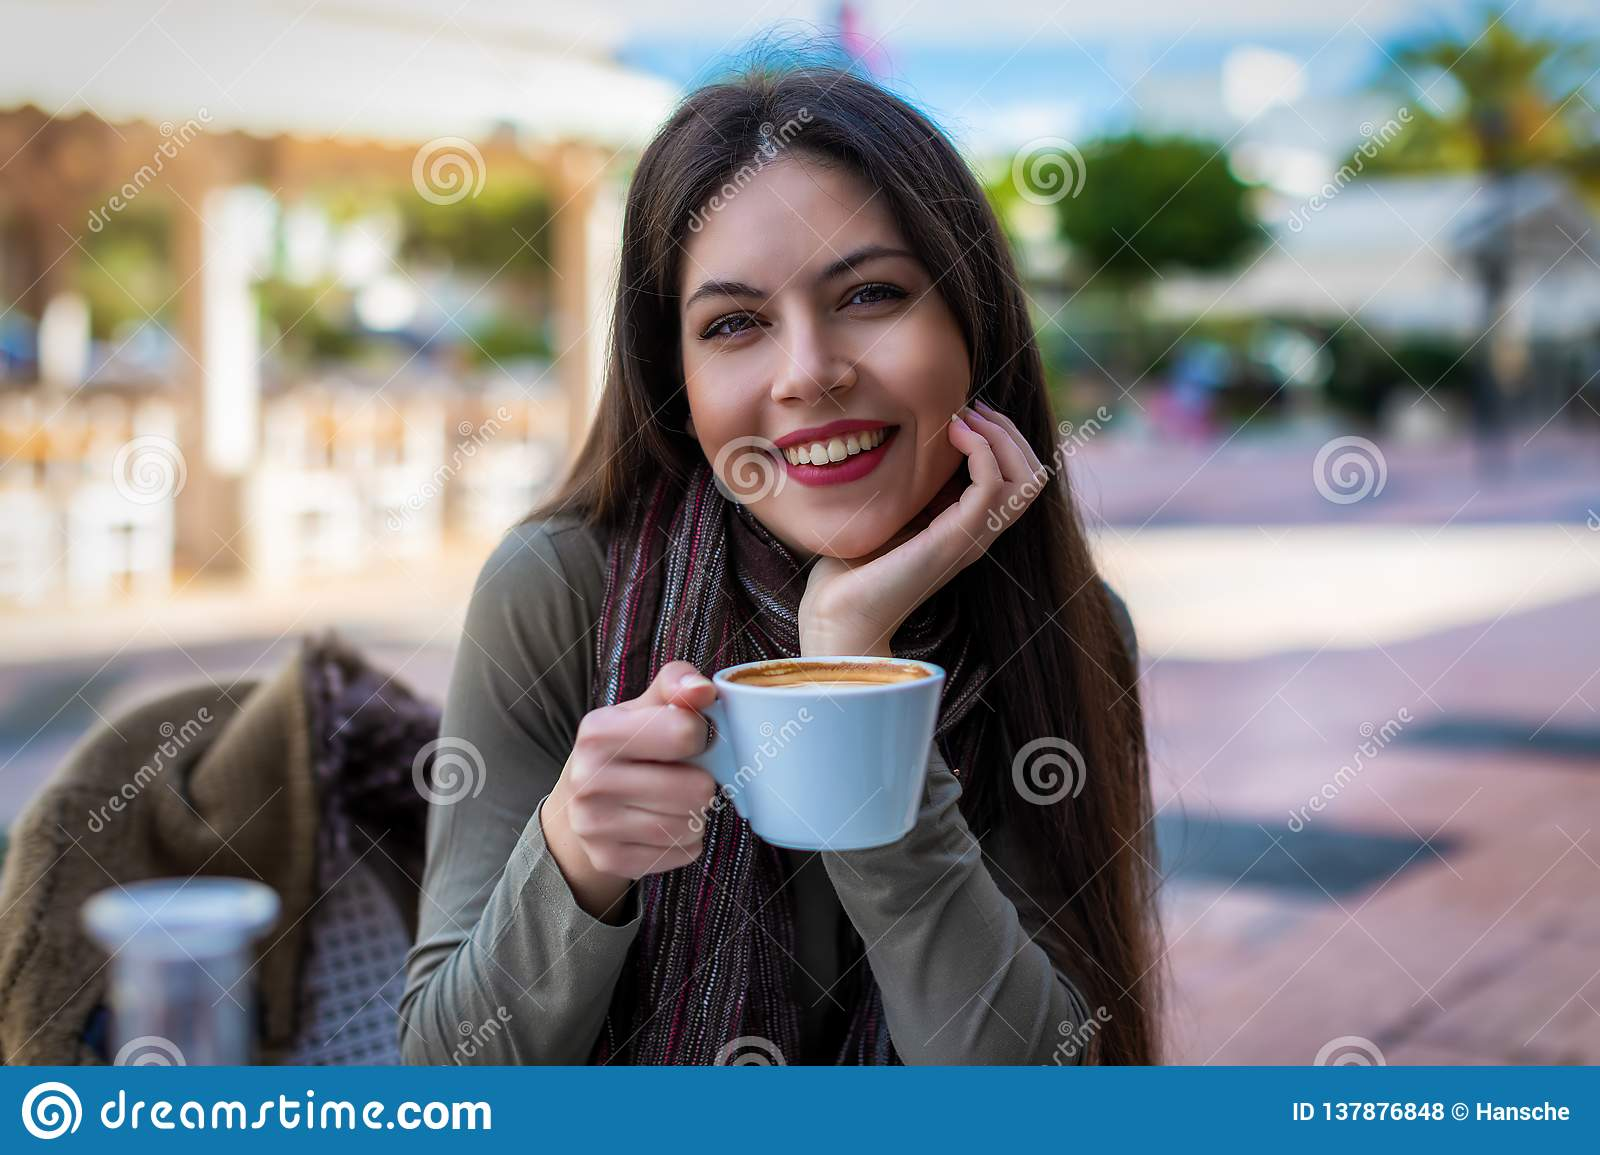 Portrait of a young woman holding a coffee cup